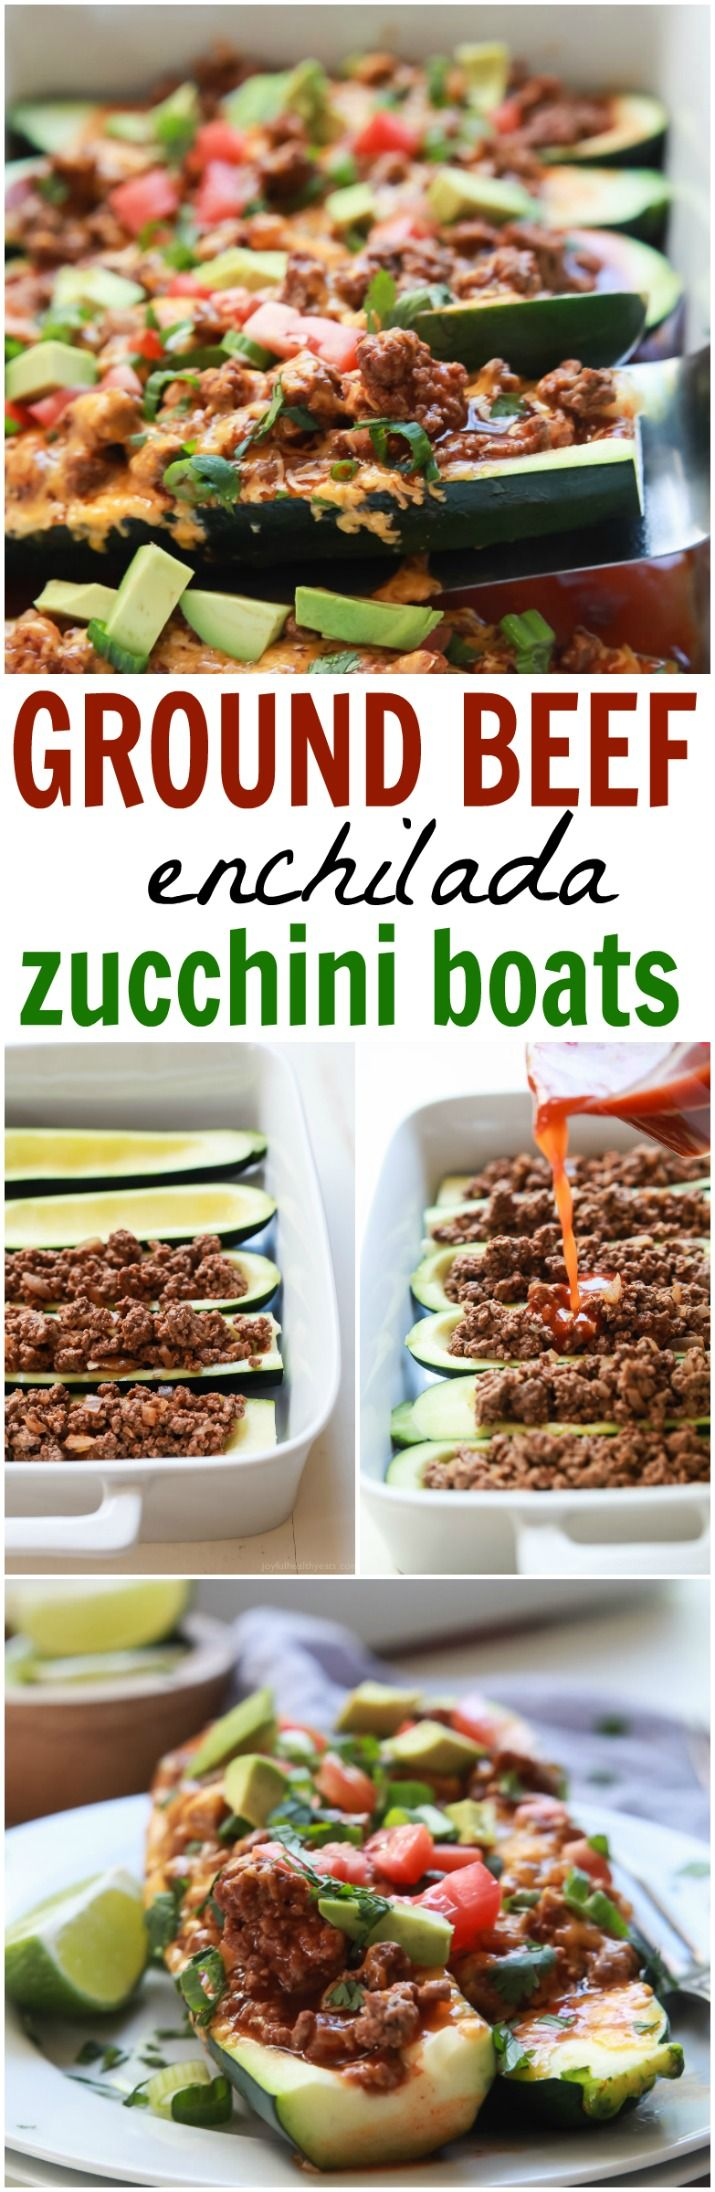 Ground Beef Enchilada Zucchini Boats Recipe Healthy Beef Beef Recipes Easy Healthy Recipes